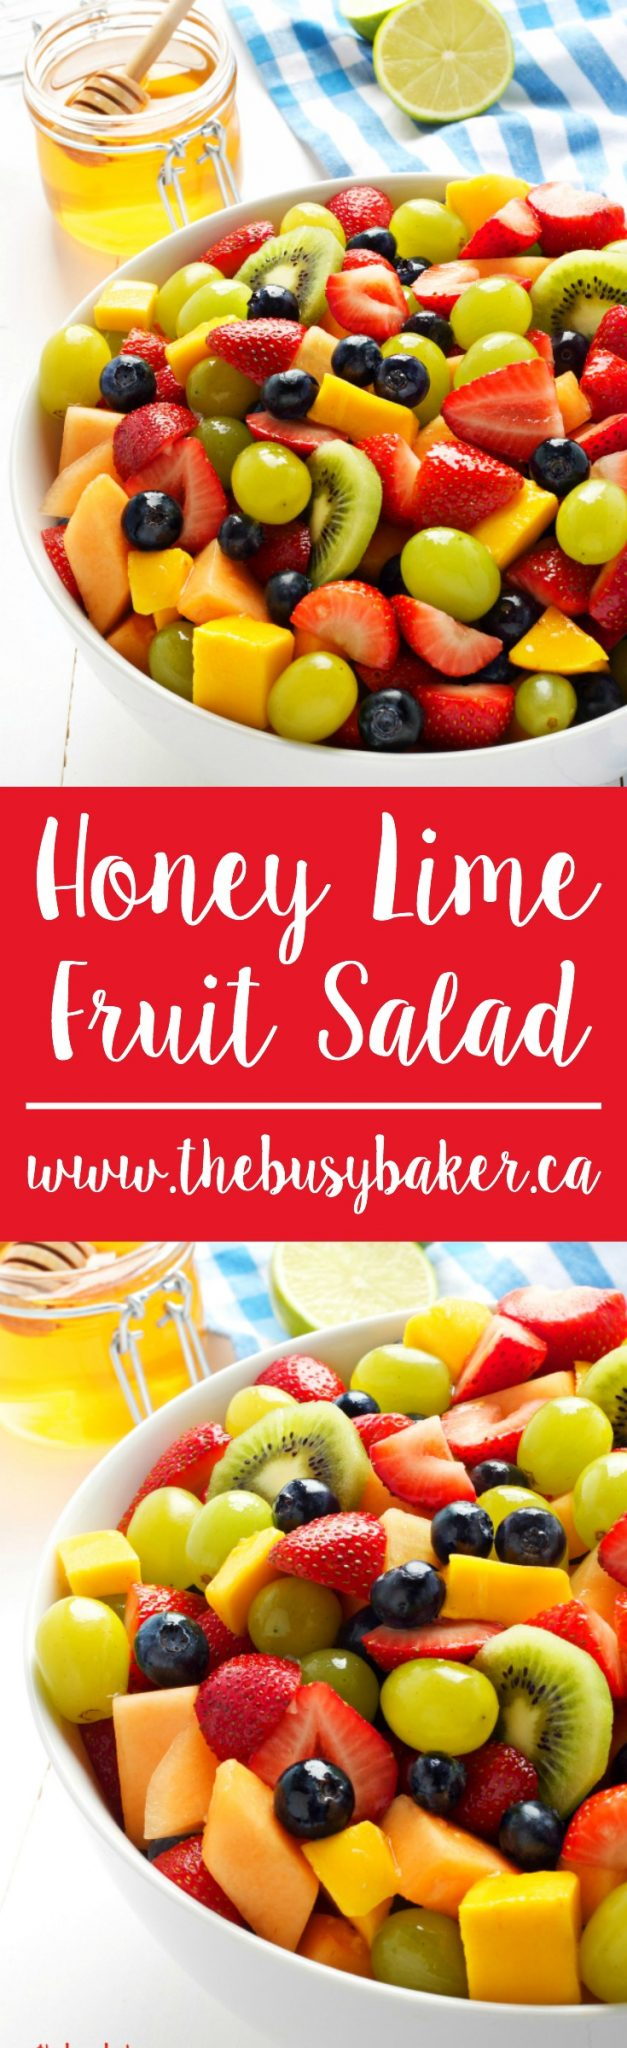 This Honey Lime Fruit Salad is so easy to make with fresh, seasonal fruit and a super simple dressing made with lime juice and honey. Recipe from thebusybaker.ca! via @busybakerblog